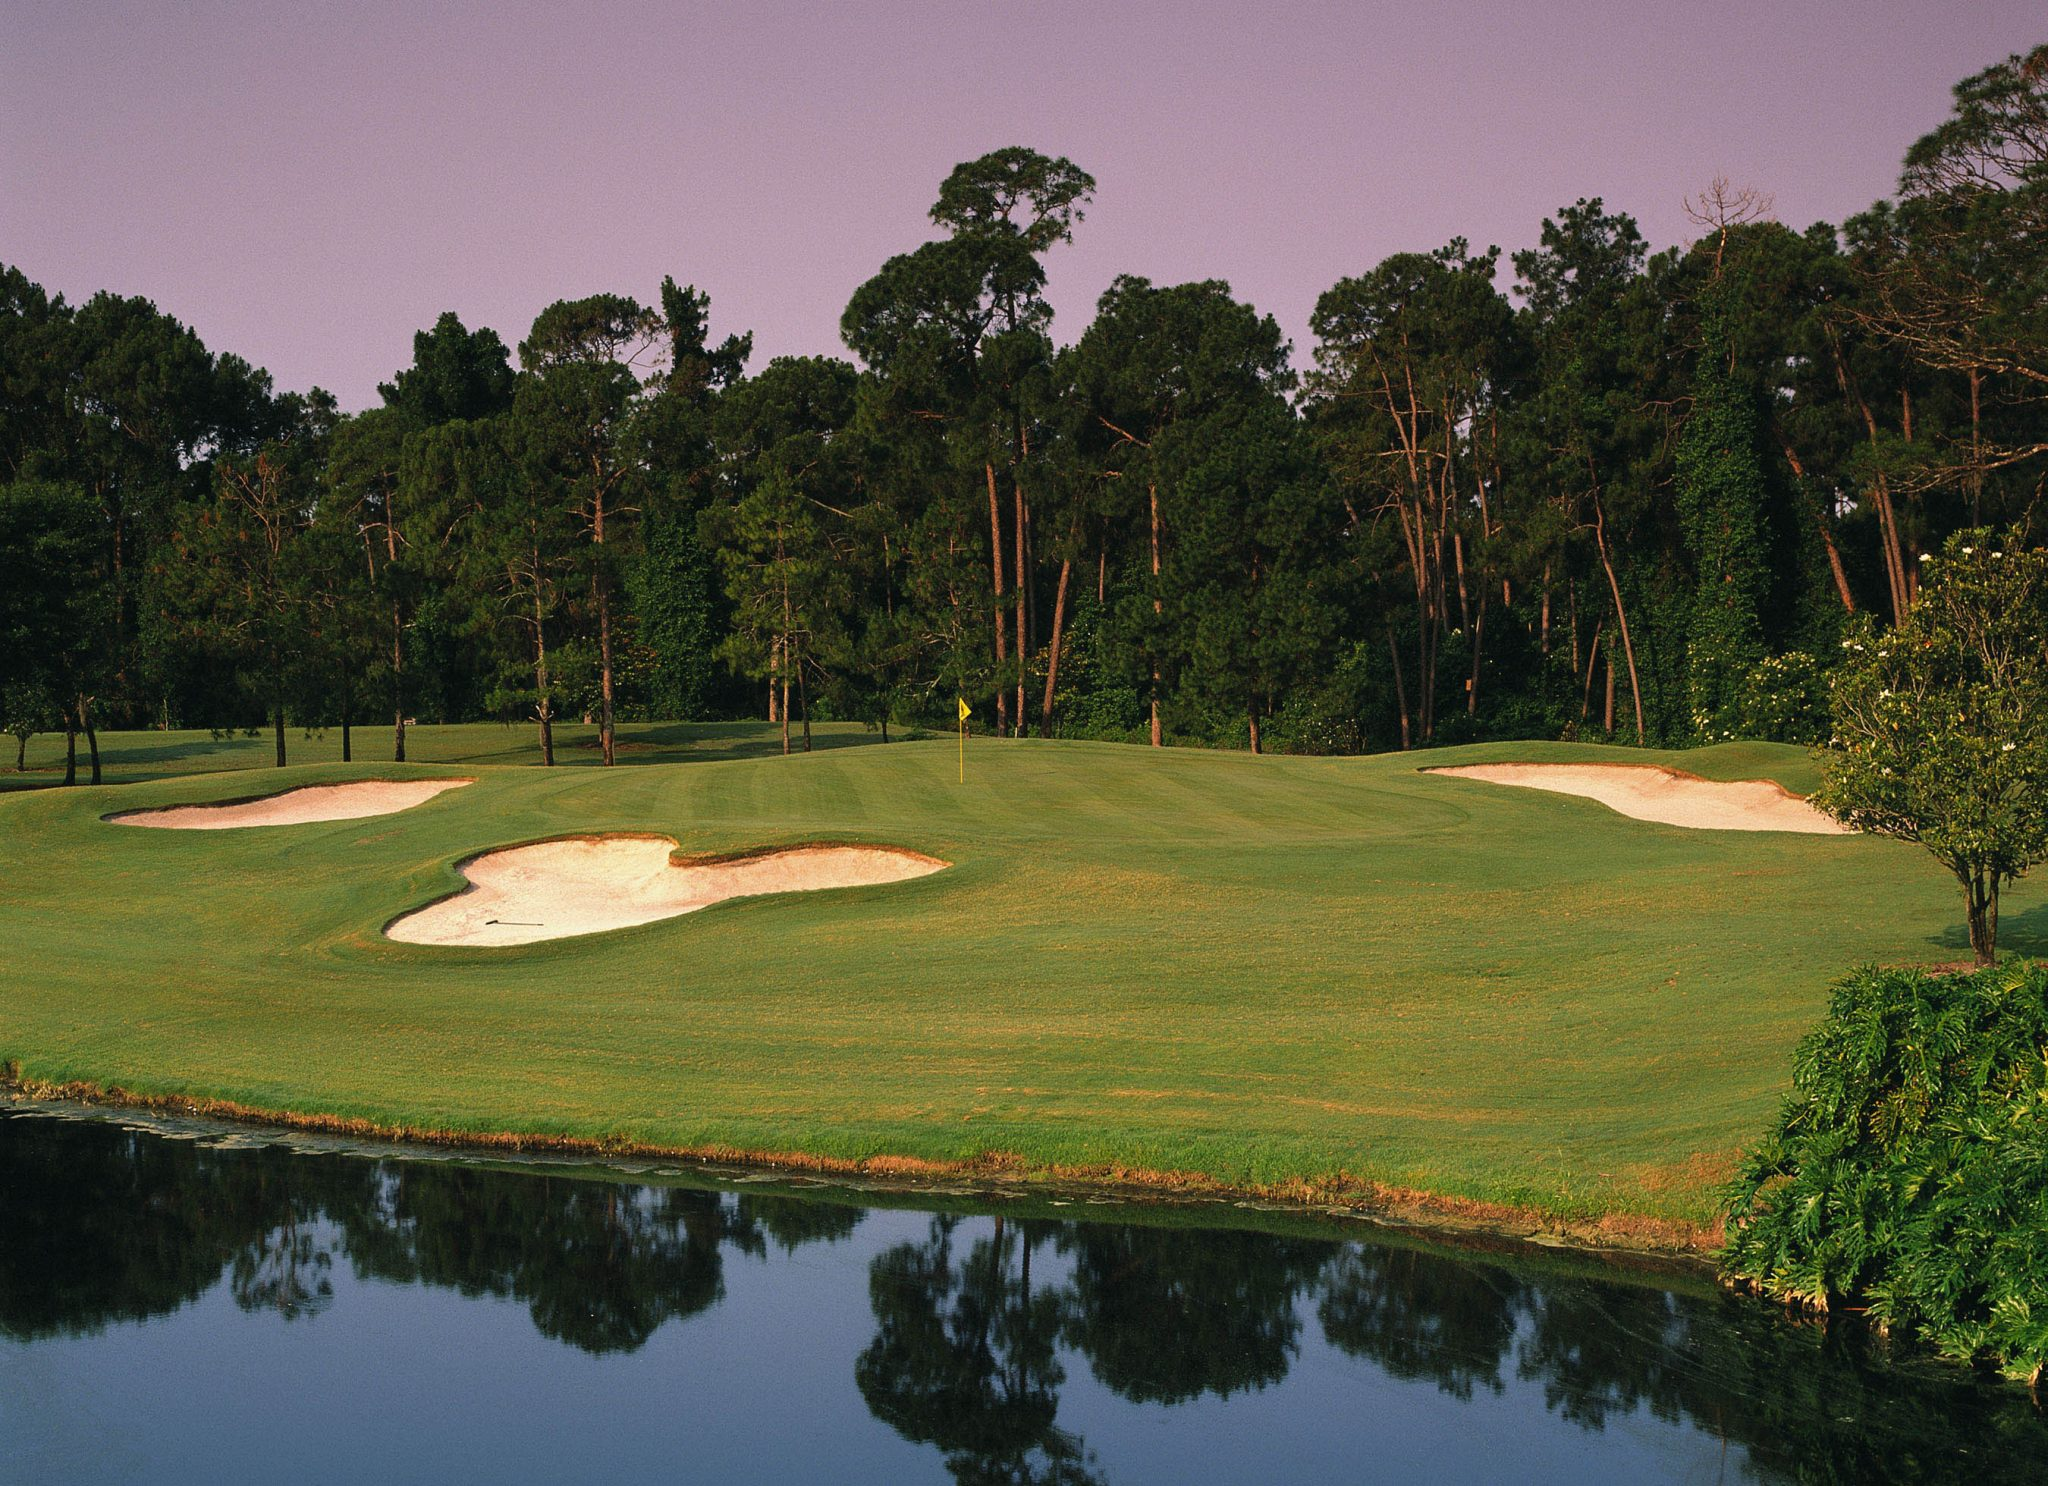 MOUSE TRAP ÐThe signature hole among the 99 holes of Walt Disney World golf is the Magnolia No. 6 a par 3 on which a bunker in the form of none other fronts the green than you know who.